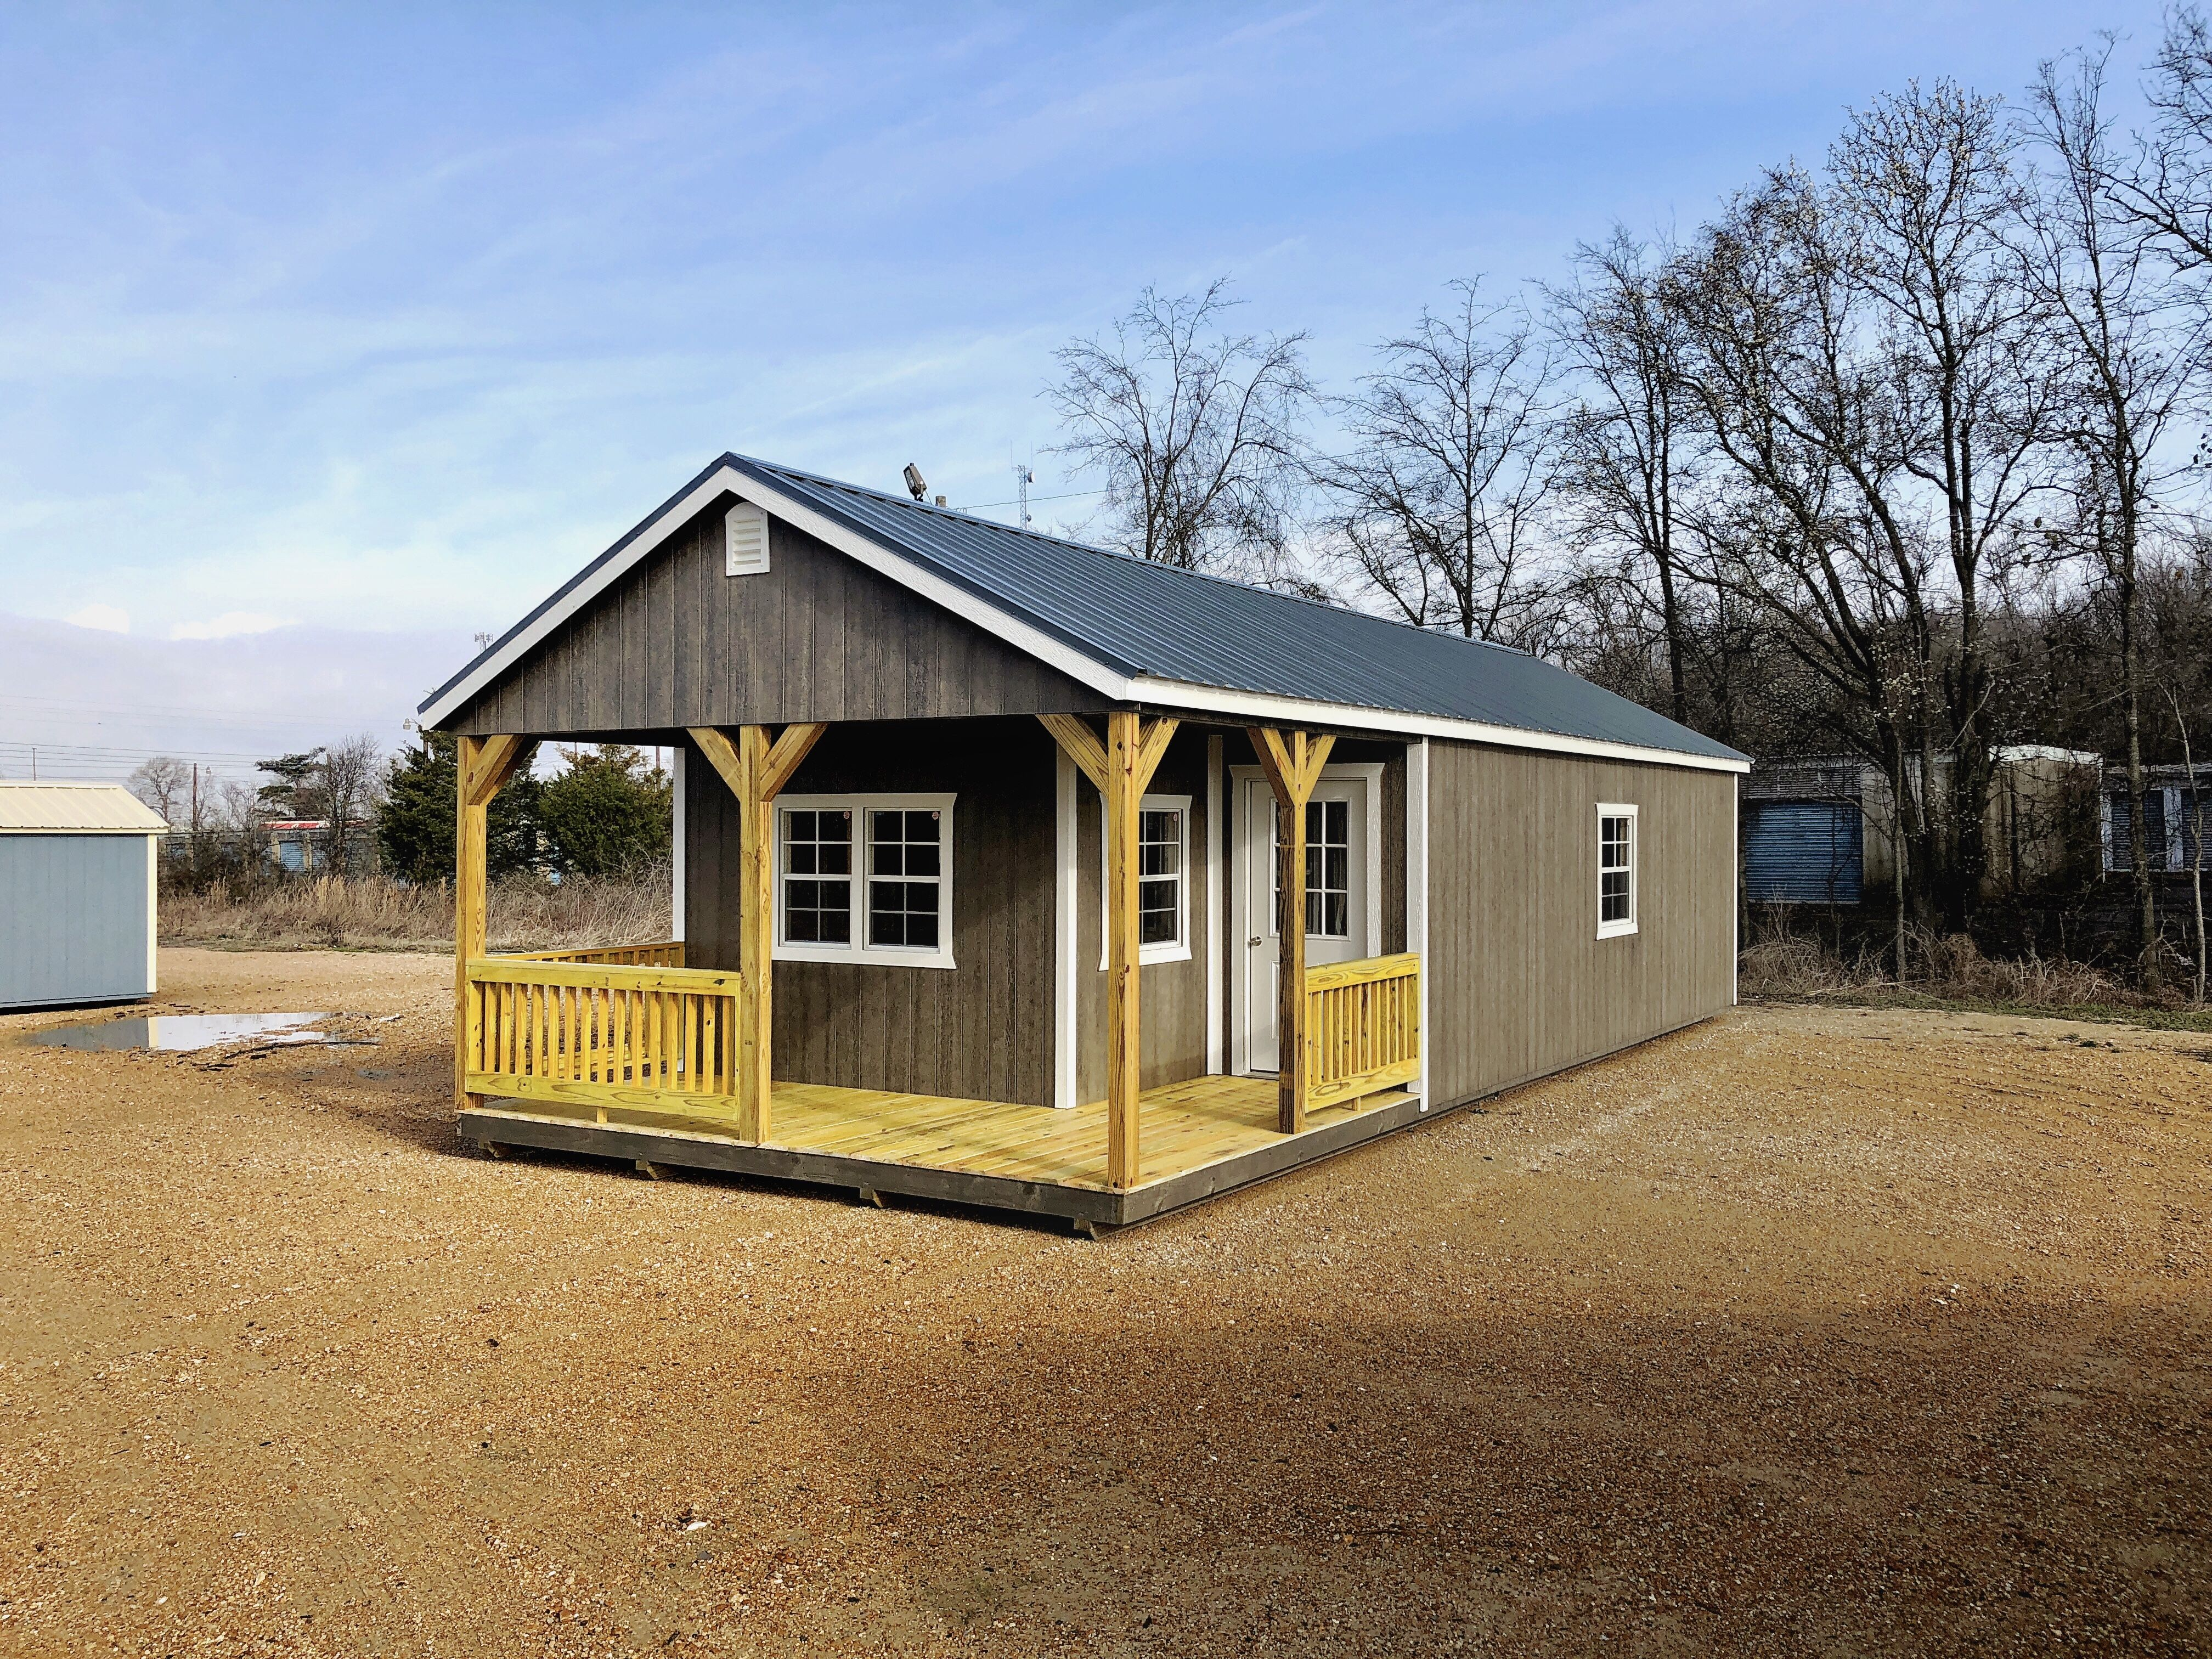 Deluxe cabin built with an I-shaped porch and has three 2X3